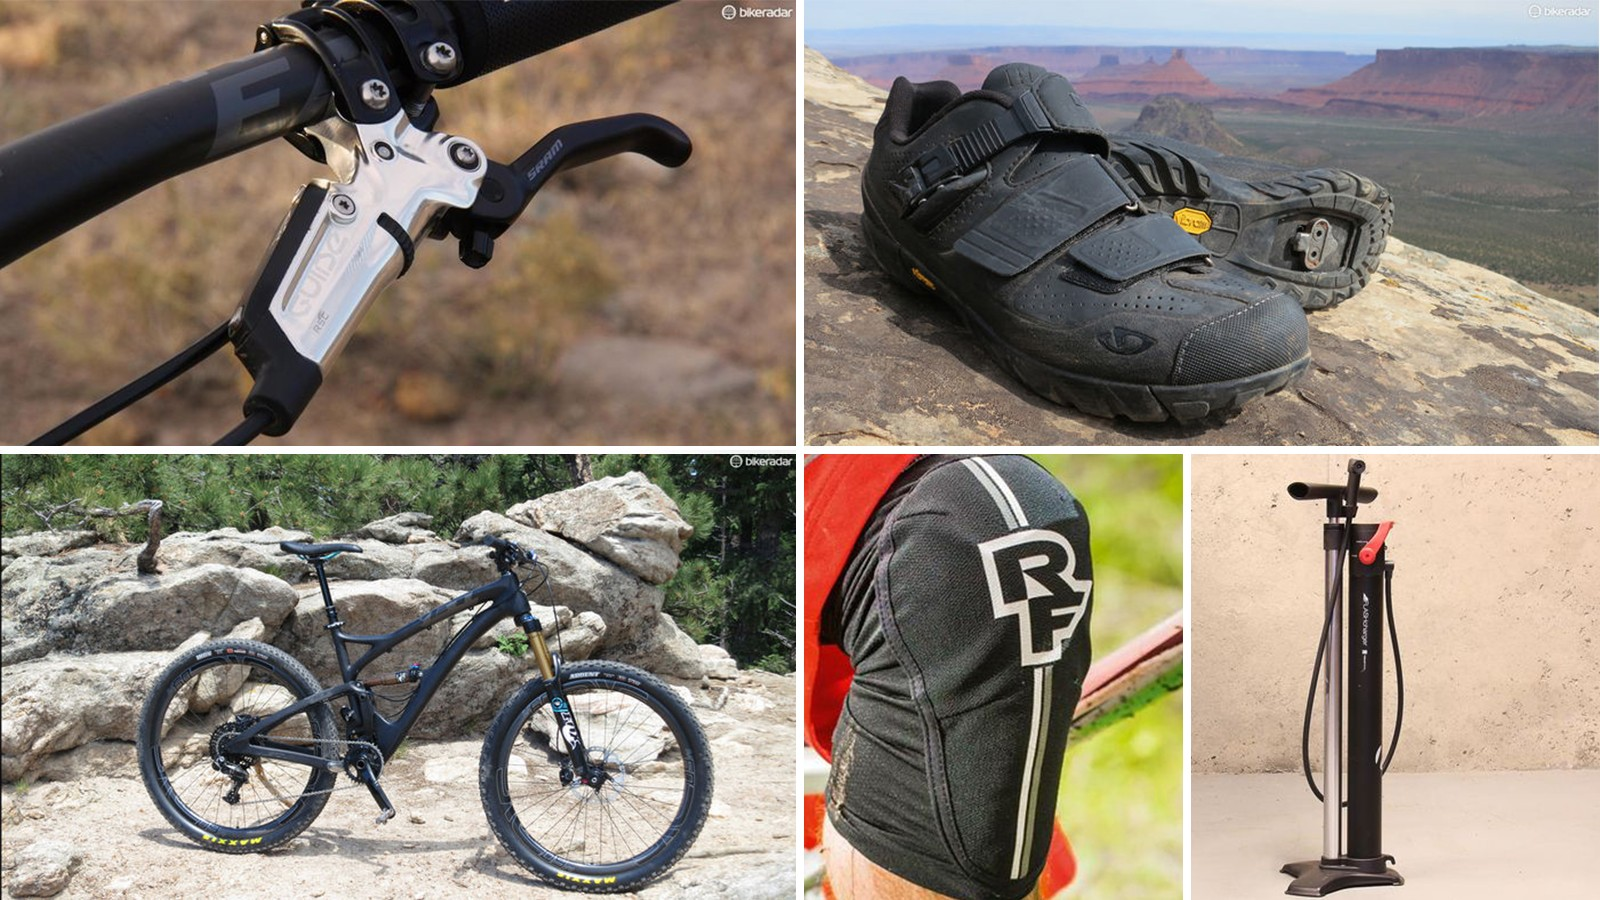 As a tech editor, I selected products that raise the bar, solve a genuine need among mountain bikers, or that I found myself reaching for each time I hit the trail